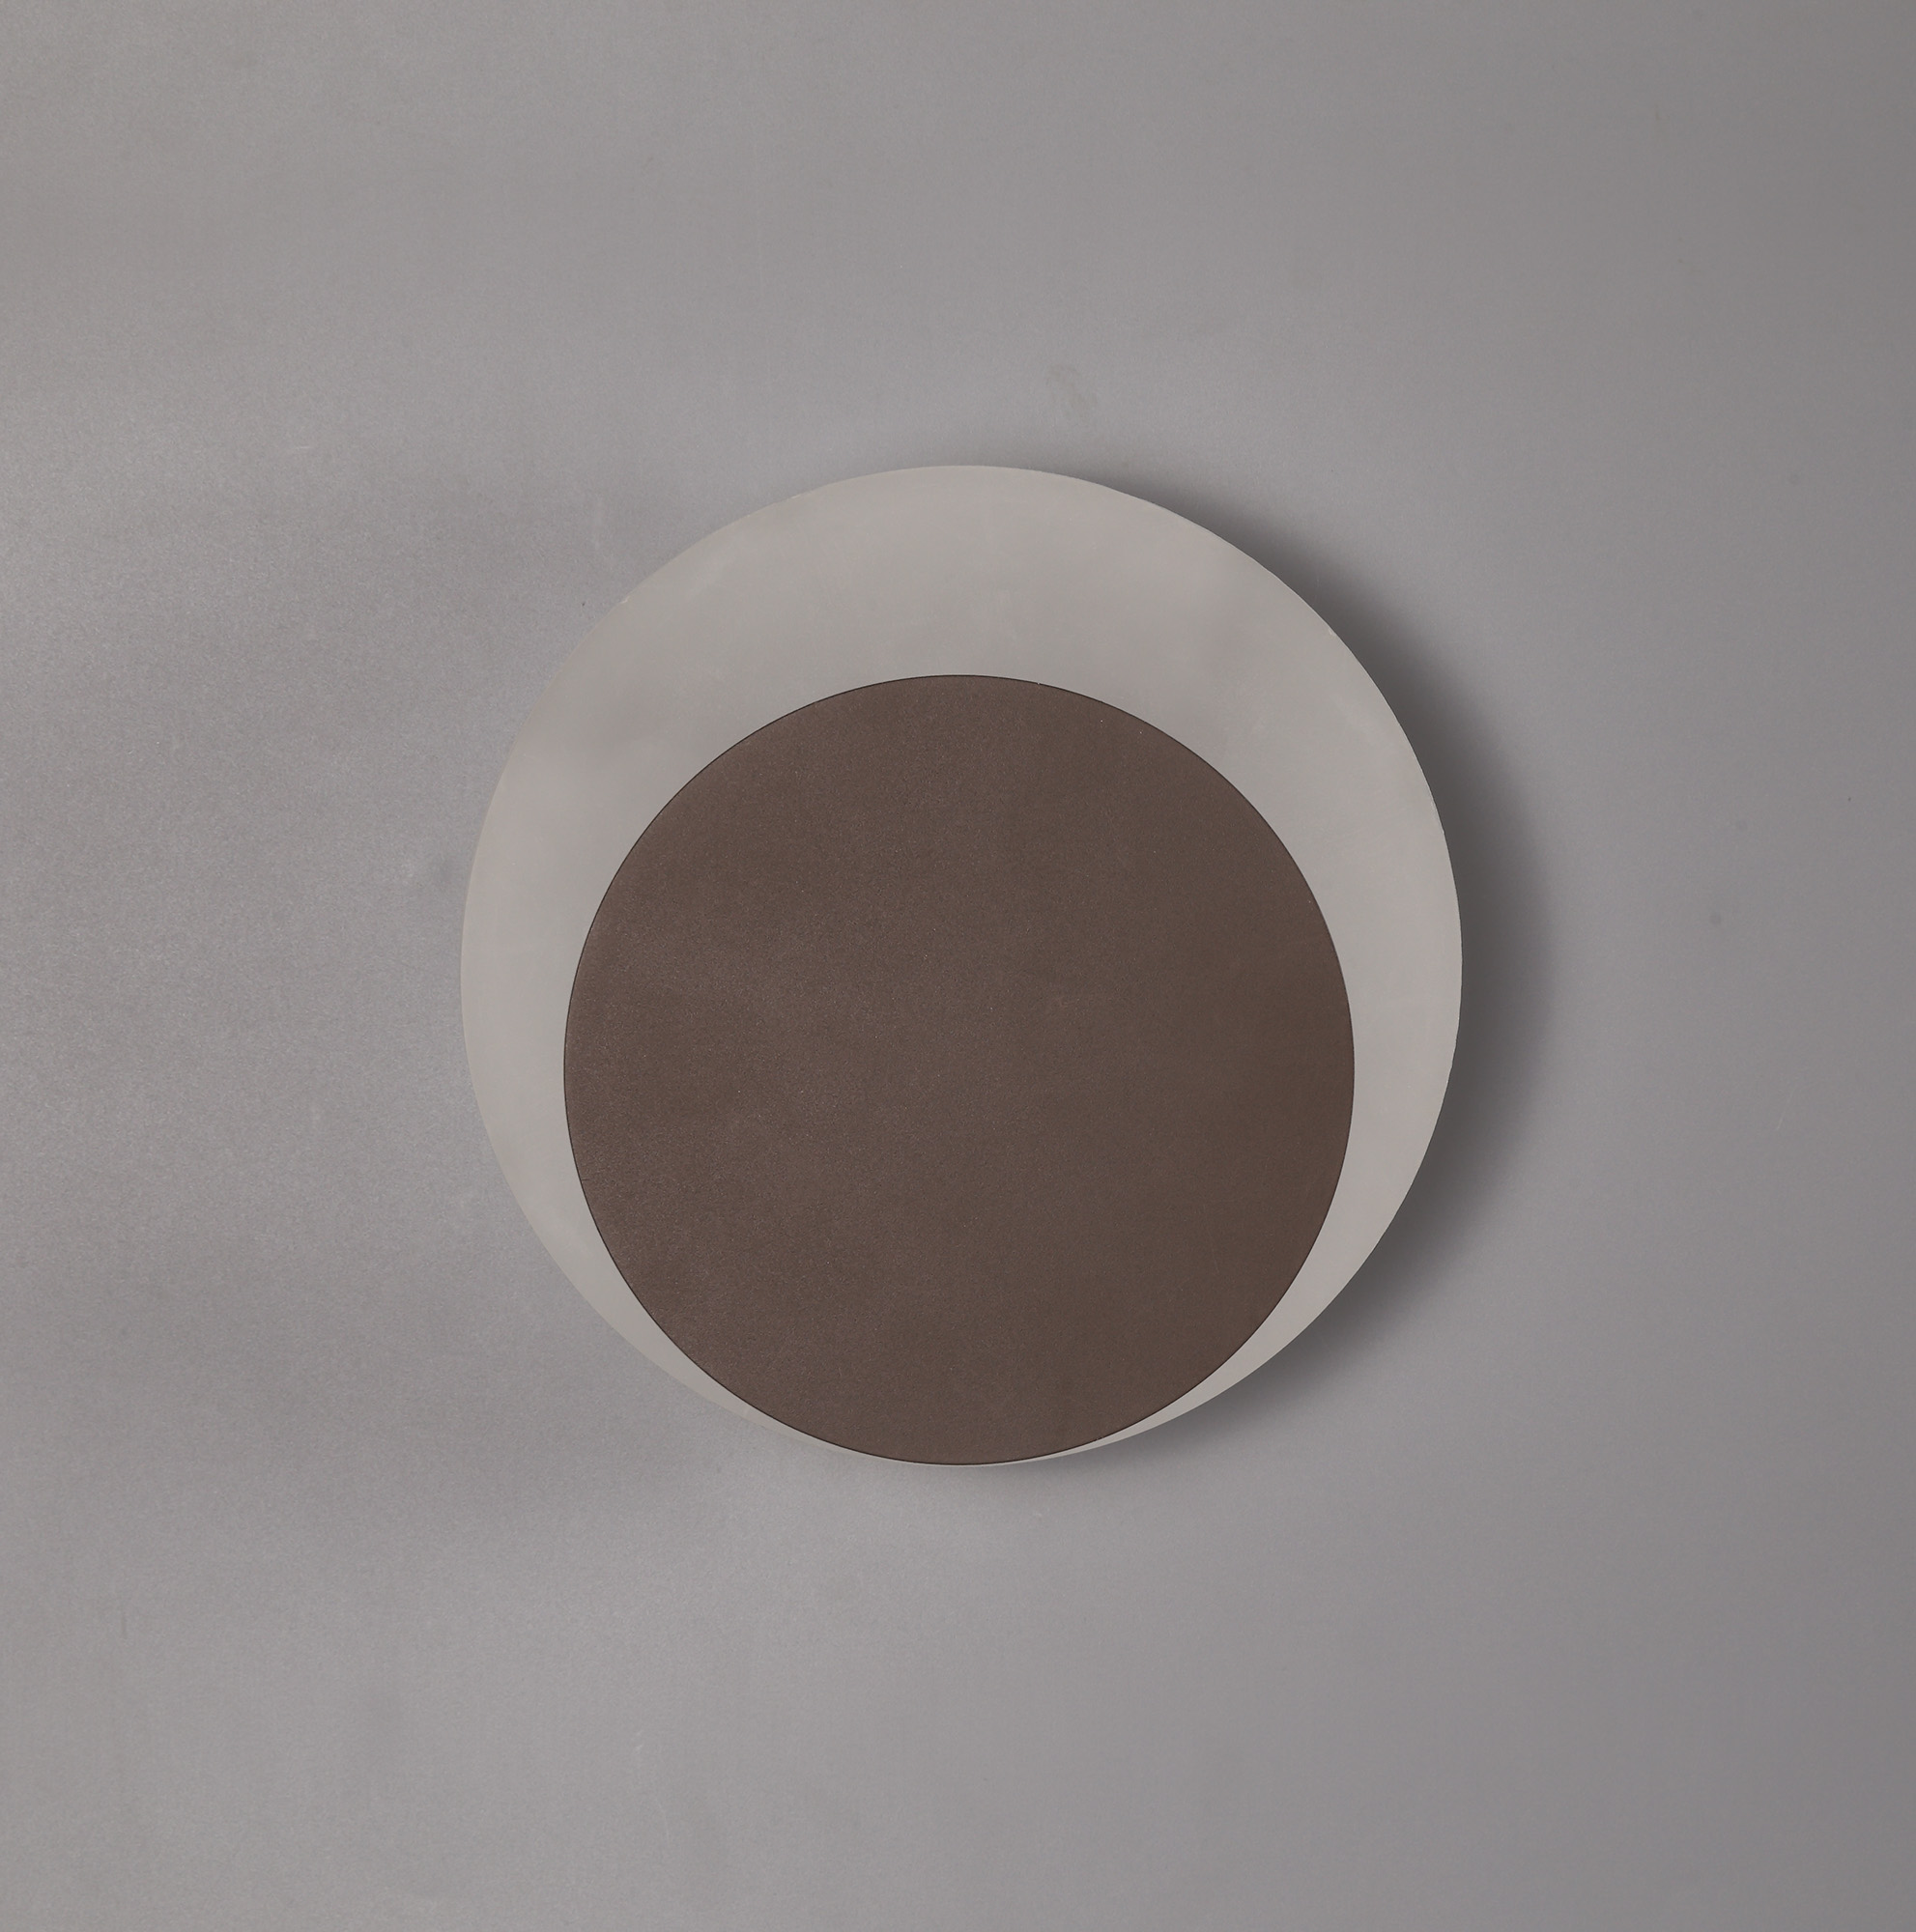 Magnetic Base Wall Lamp, 12W LED 3000K 498lm, 15/19cm Round Centre, Frosted Diffuser